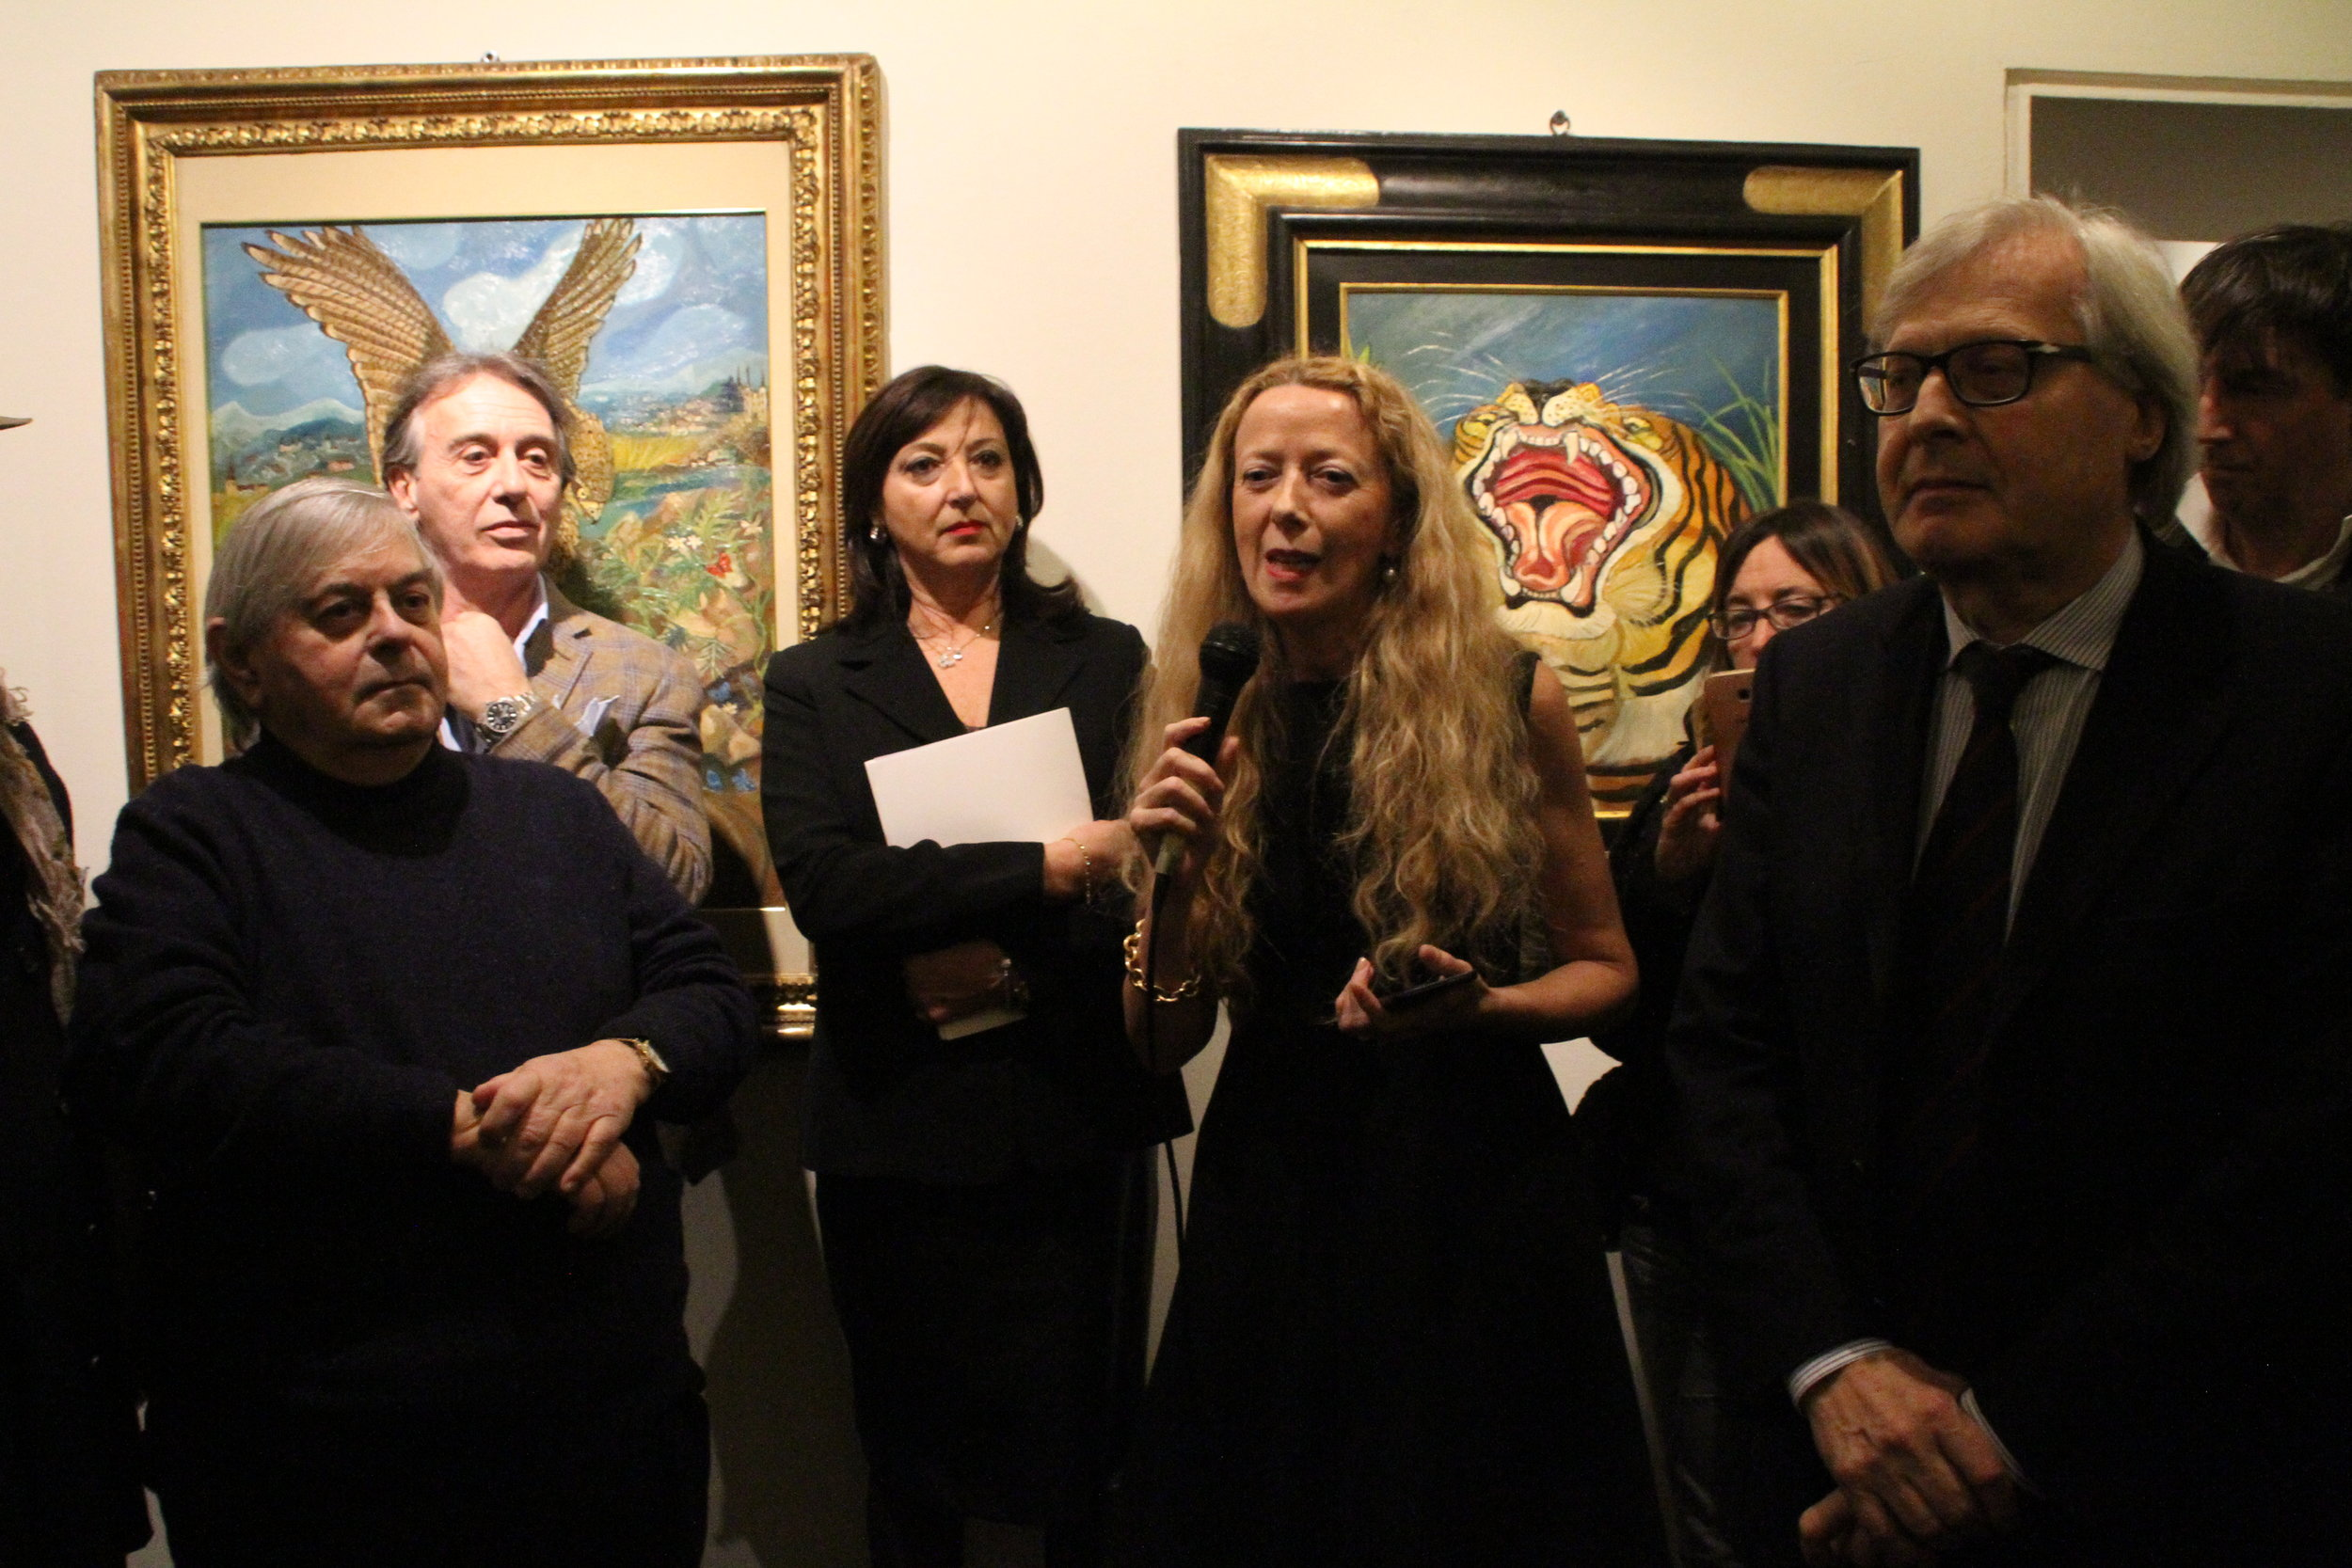 From the left: Prof. Marzio Dall'Acqua, the general secretary of the Fondazione Archivio Antonio Ligabue Mario A. Fiori, the vice-president of the Fondazione Archivio Antonio Ligabue Anita Molinari, the curator of the Biffi Arte Gallery Susanna Gualazzini and Prof. Vittorio Sgarbi. Everyone spoke at the exhibition's inauguration.